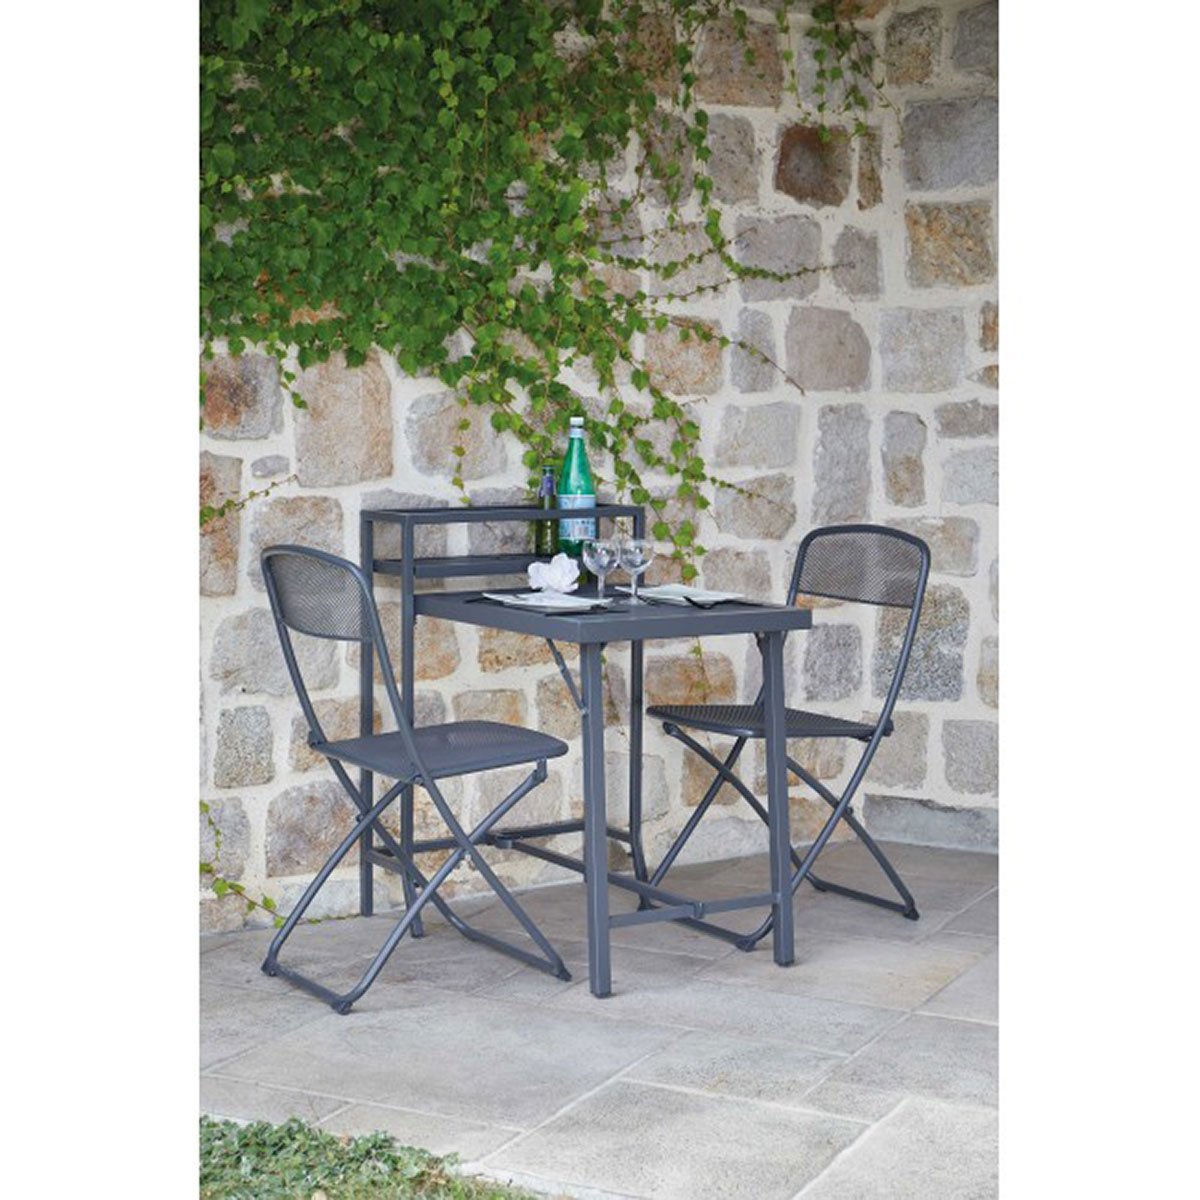 salon de jardin pliable sp cial petit espace anthracite homemaison vente en ligne salons. Black Bedroom Furniture Sets. Home Design Ideas